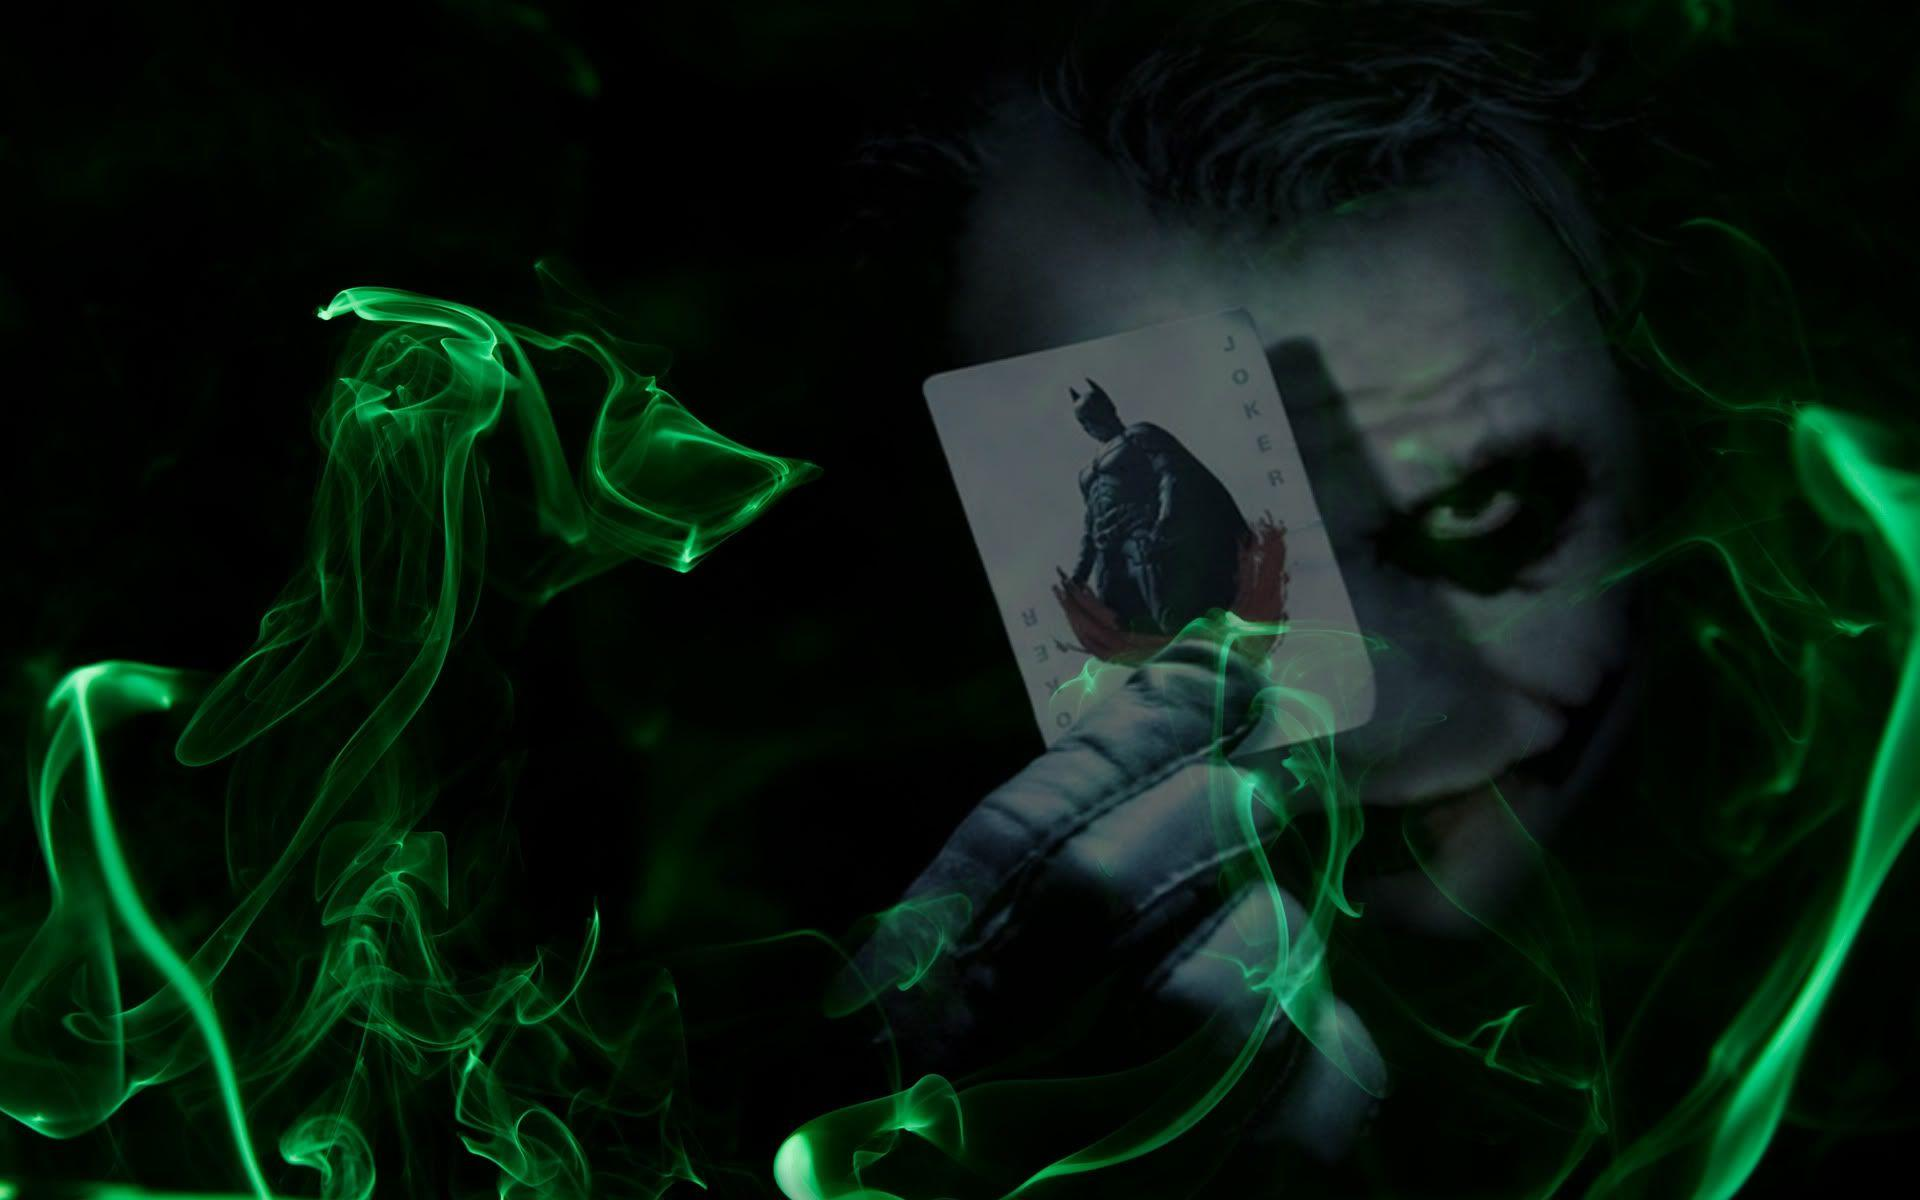 Joker Hd Wallpapers